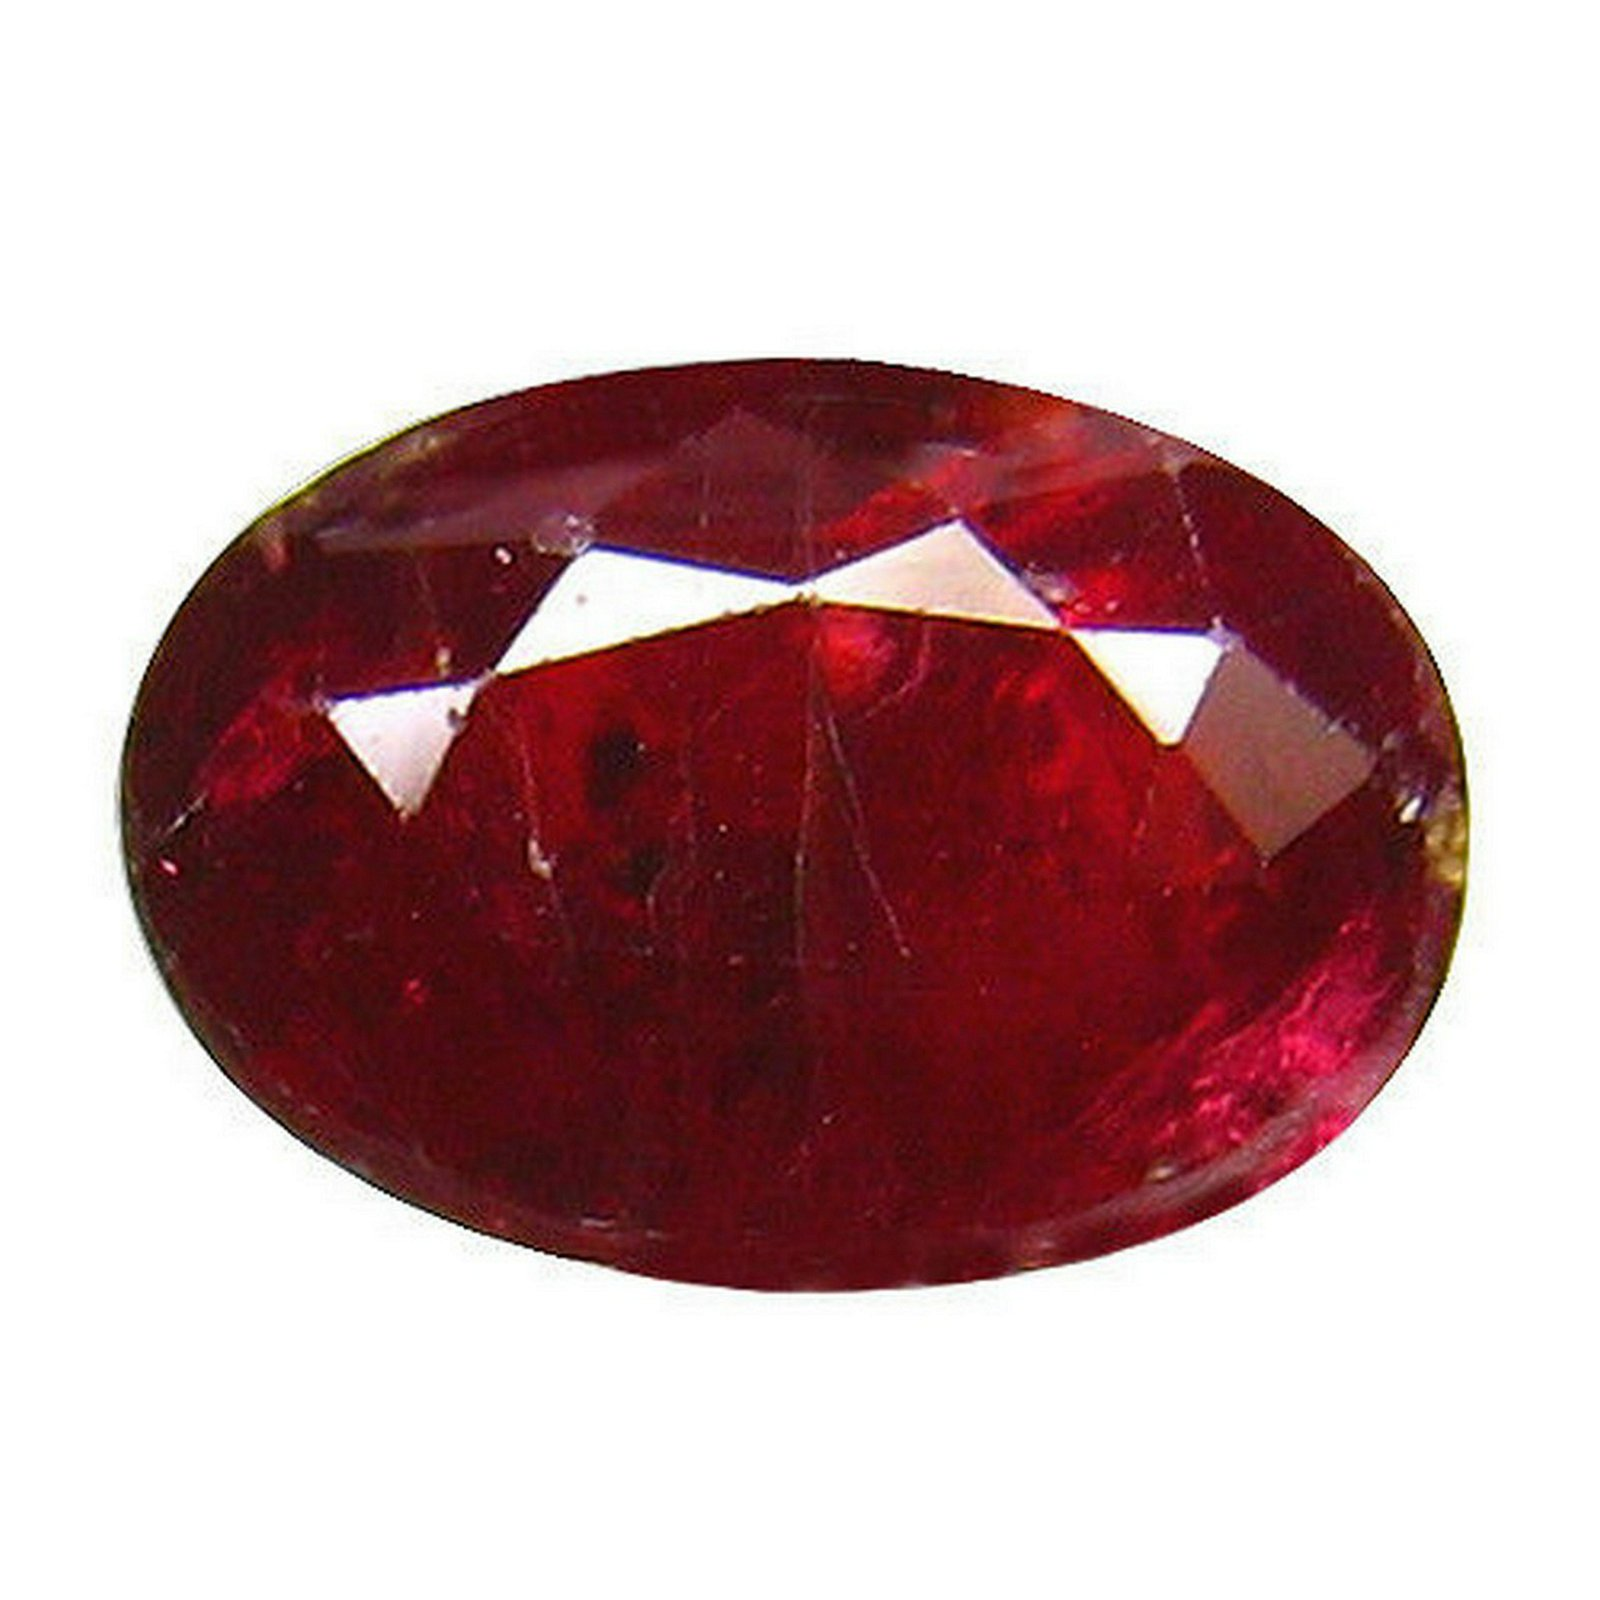 1.44 ct GFCO certified pigeon blood red ruby-untreated